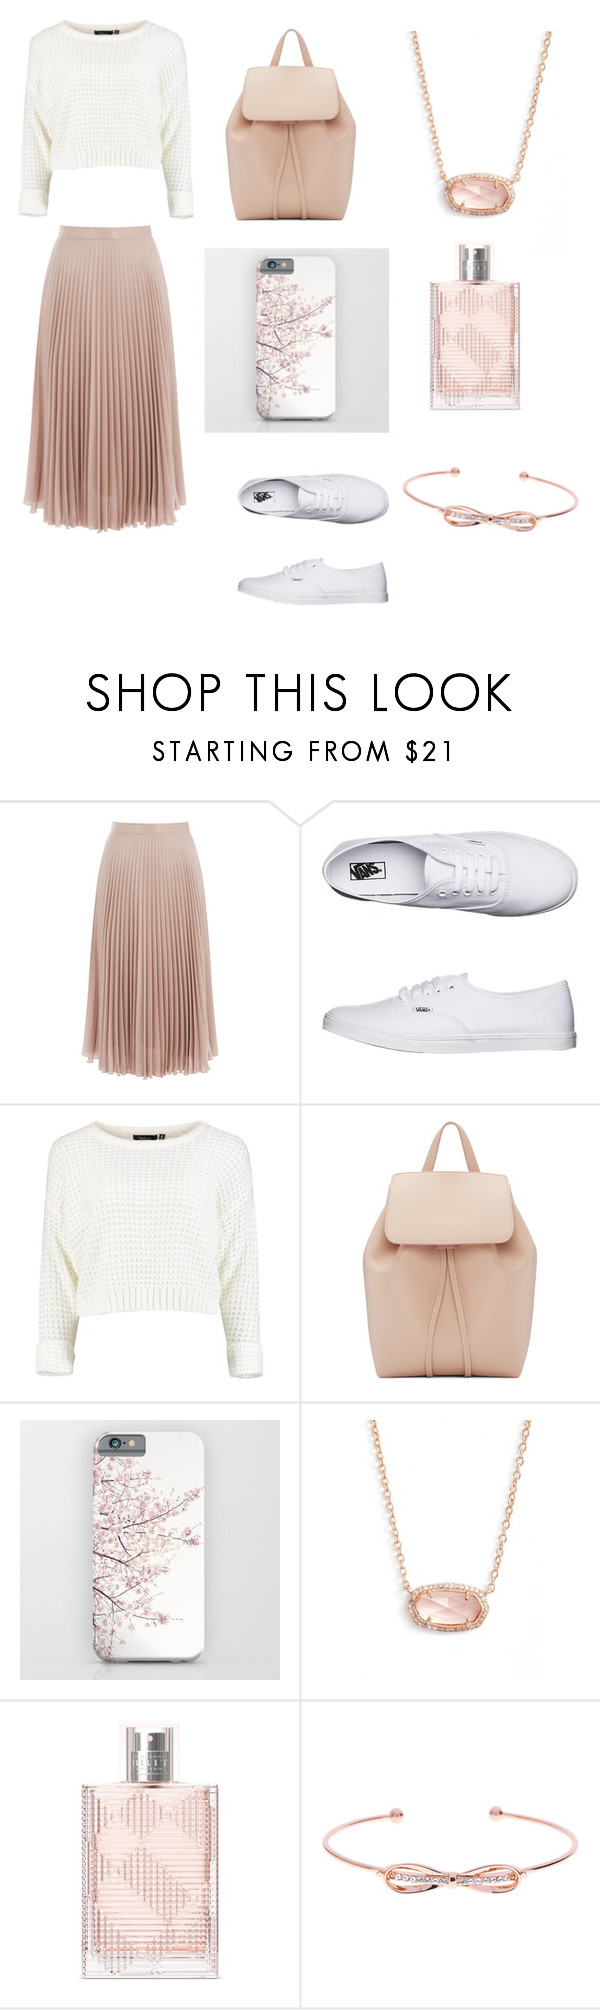 """Untitled #236"" by agnes-18 ❤ liked on Polyvore featuring Warehouse, Vans, Mansur Gavriel, Kendra Scott, Burberry and Ted Baker"